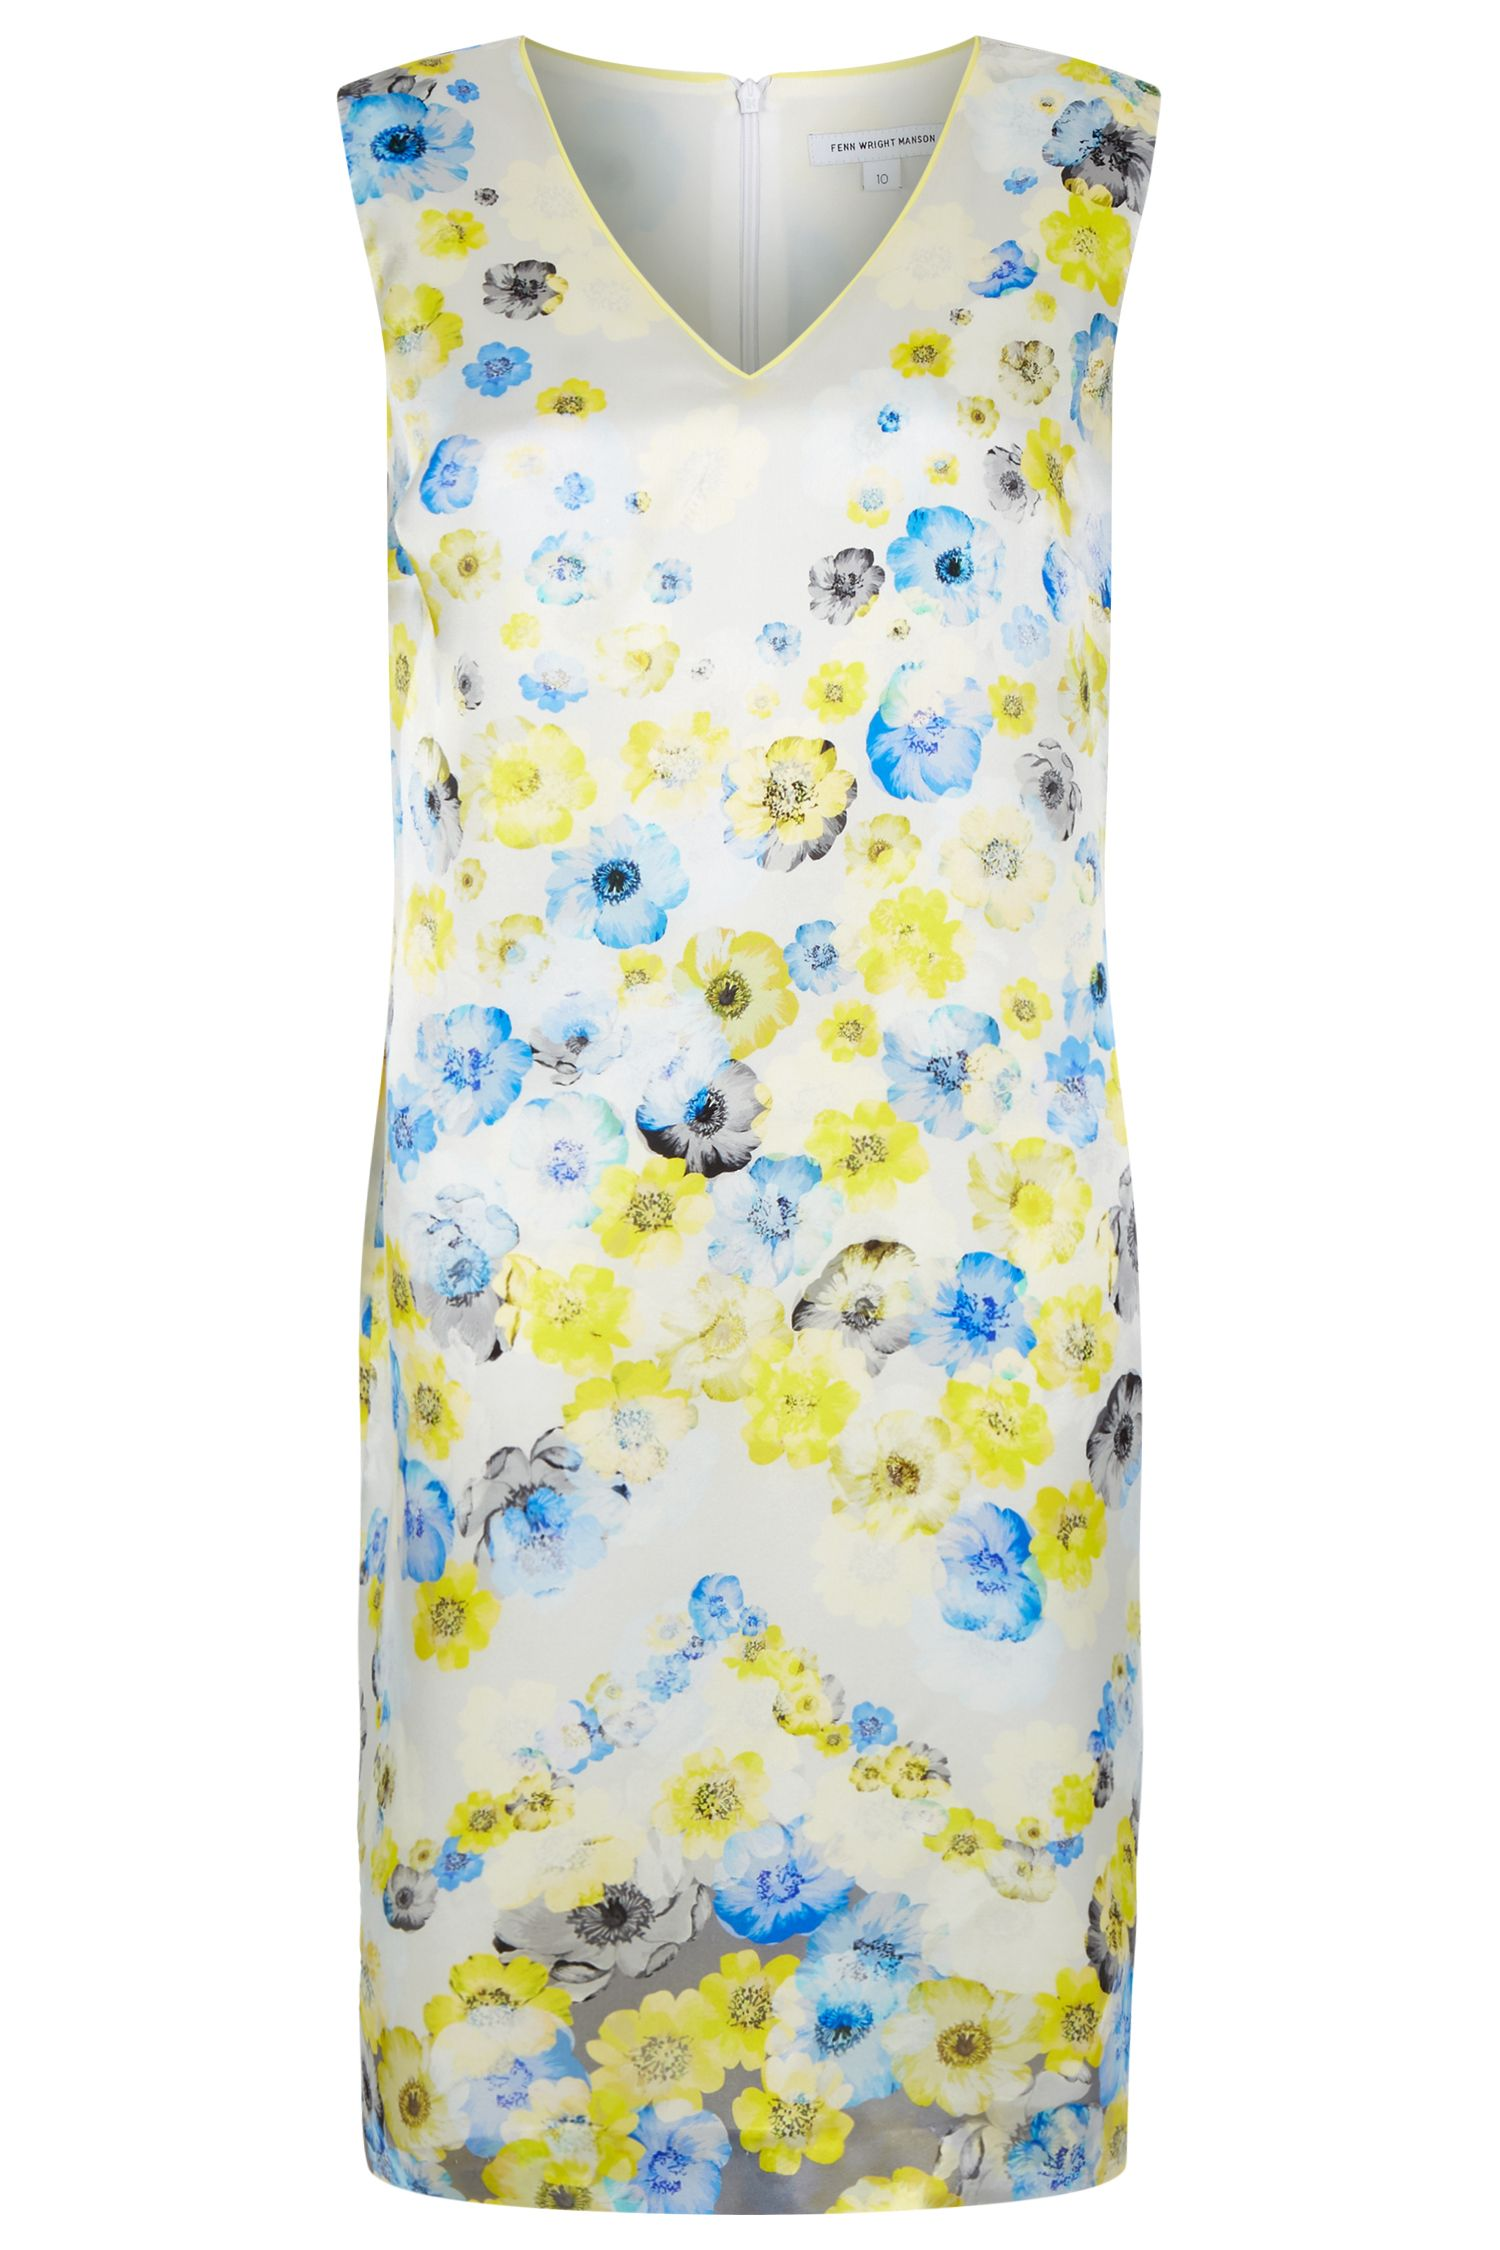 Fenn Wright Manson Kefalonia Dress, Multi-Coloured